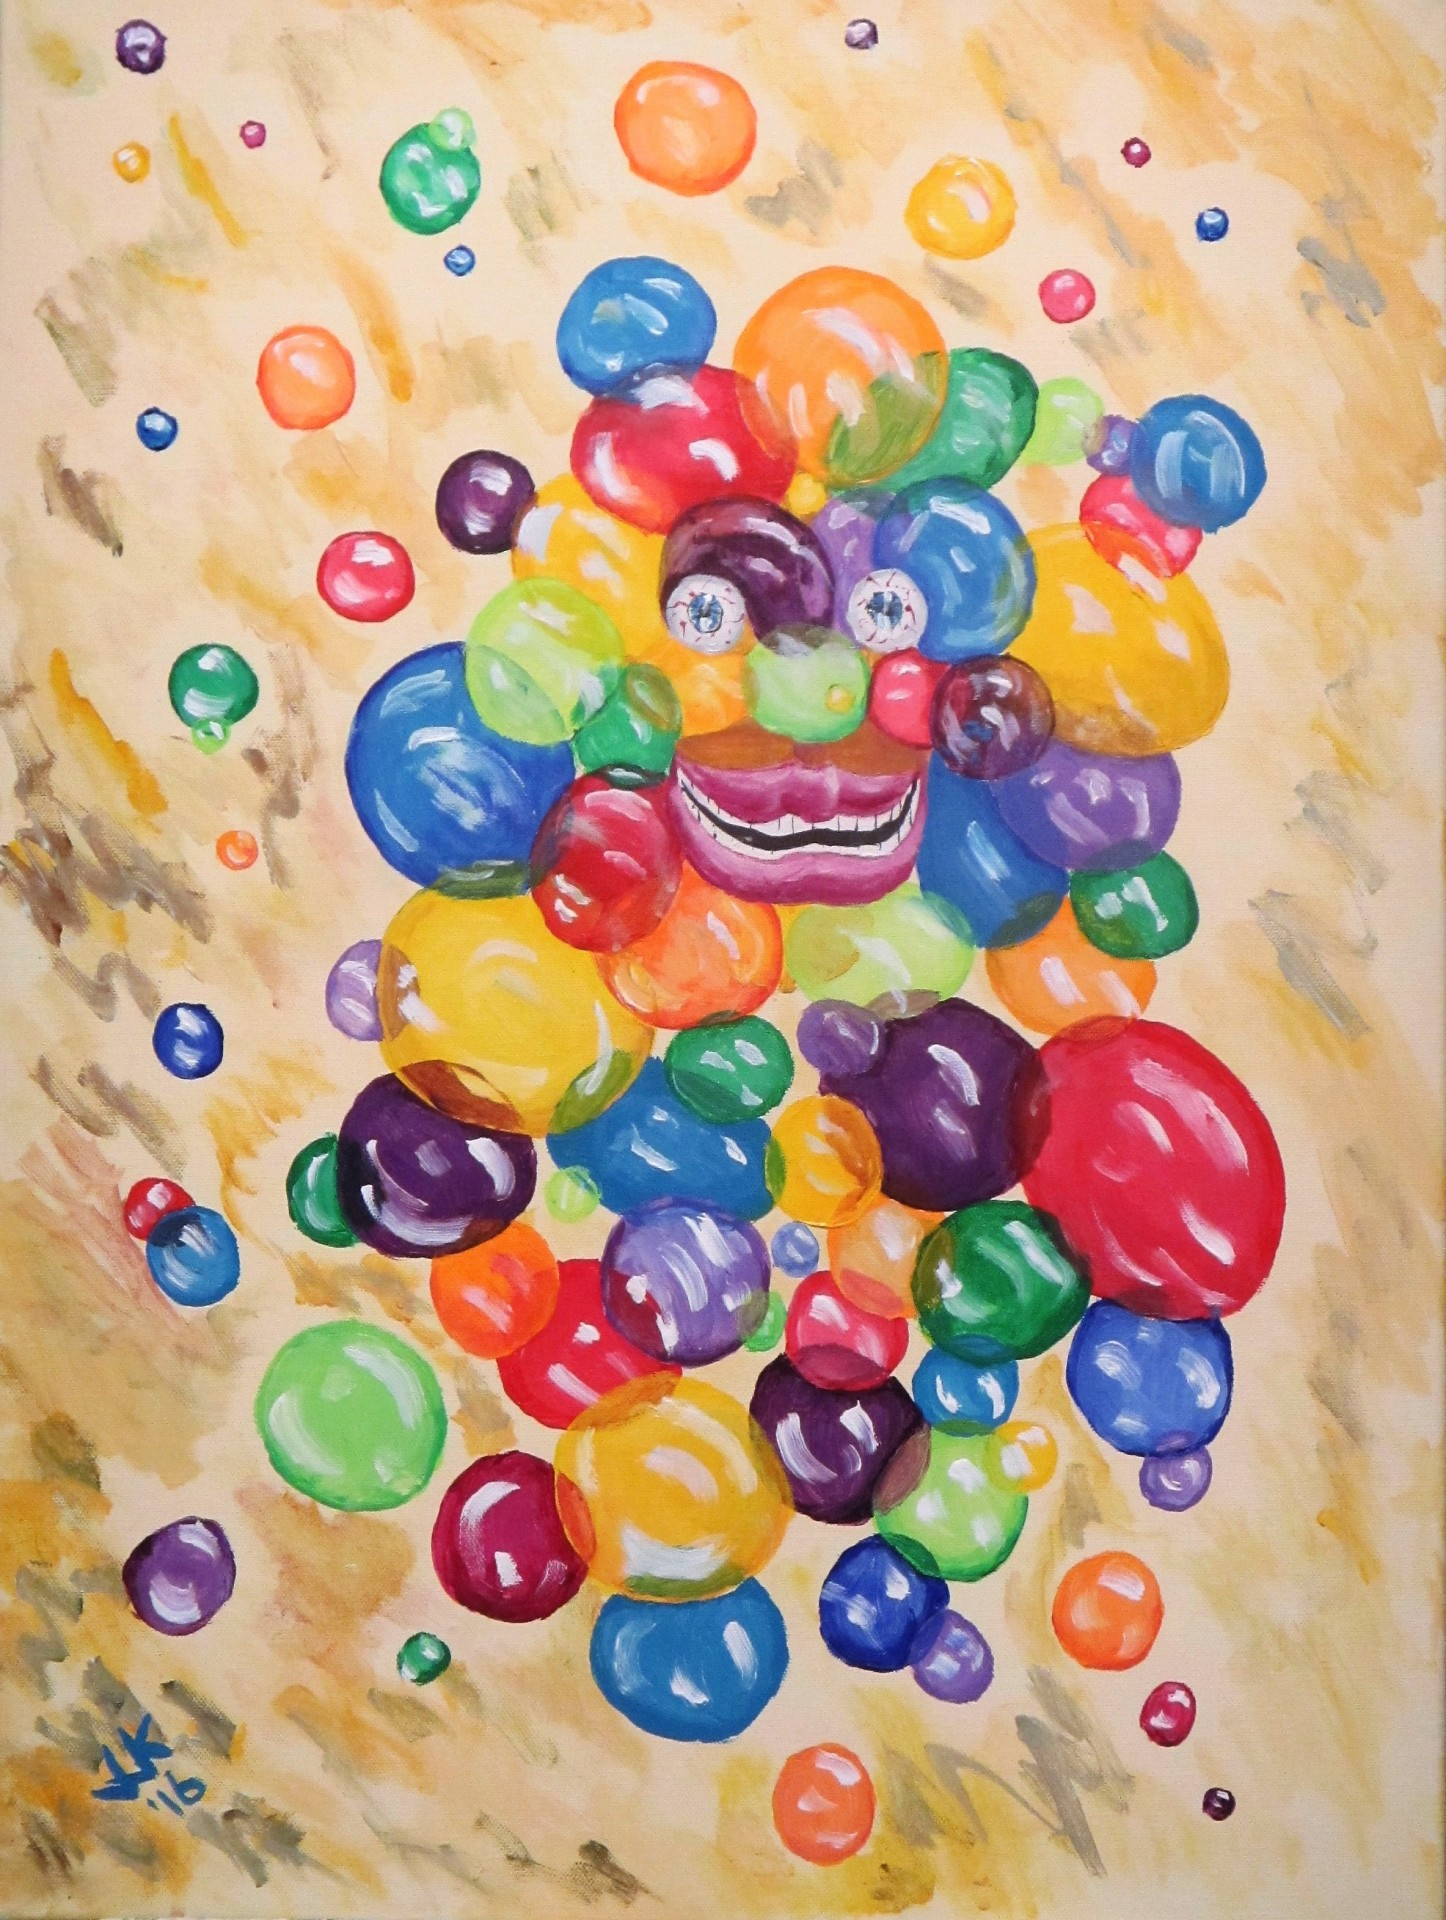 Abstract of a man made of bubbles.